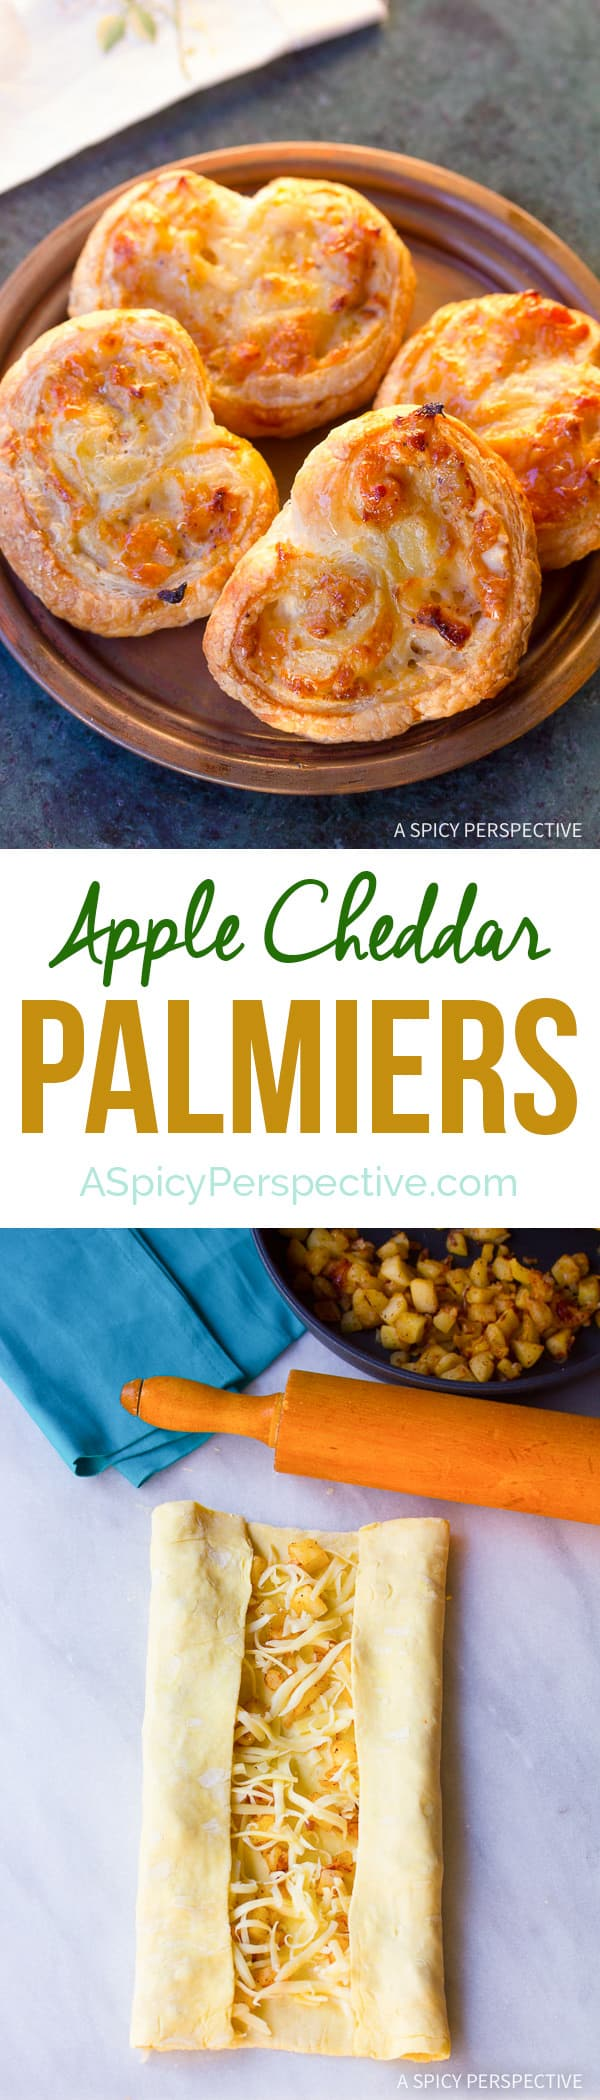 These Easy Apple Cheddar Palmiers on ASpicyPerspective.com are great for holiday parties!